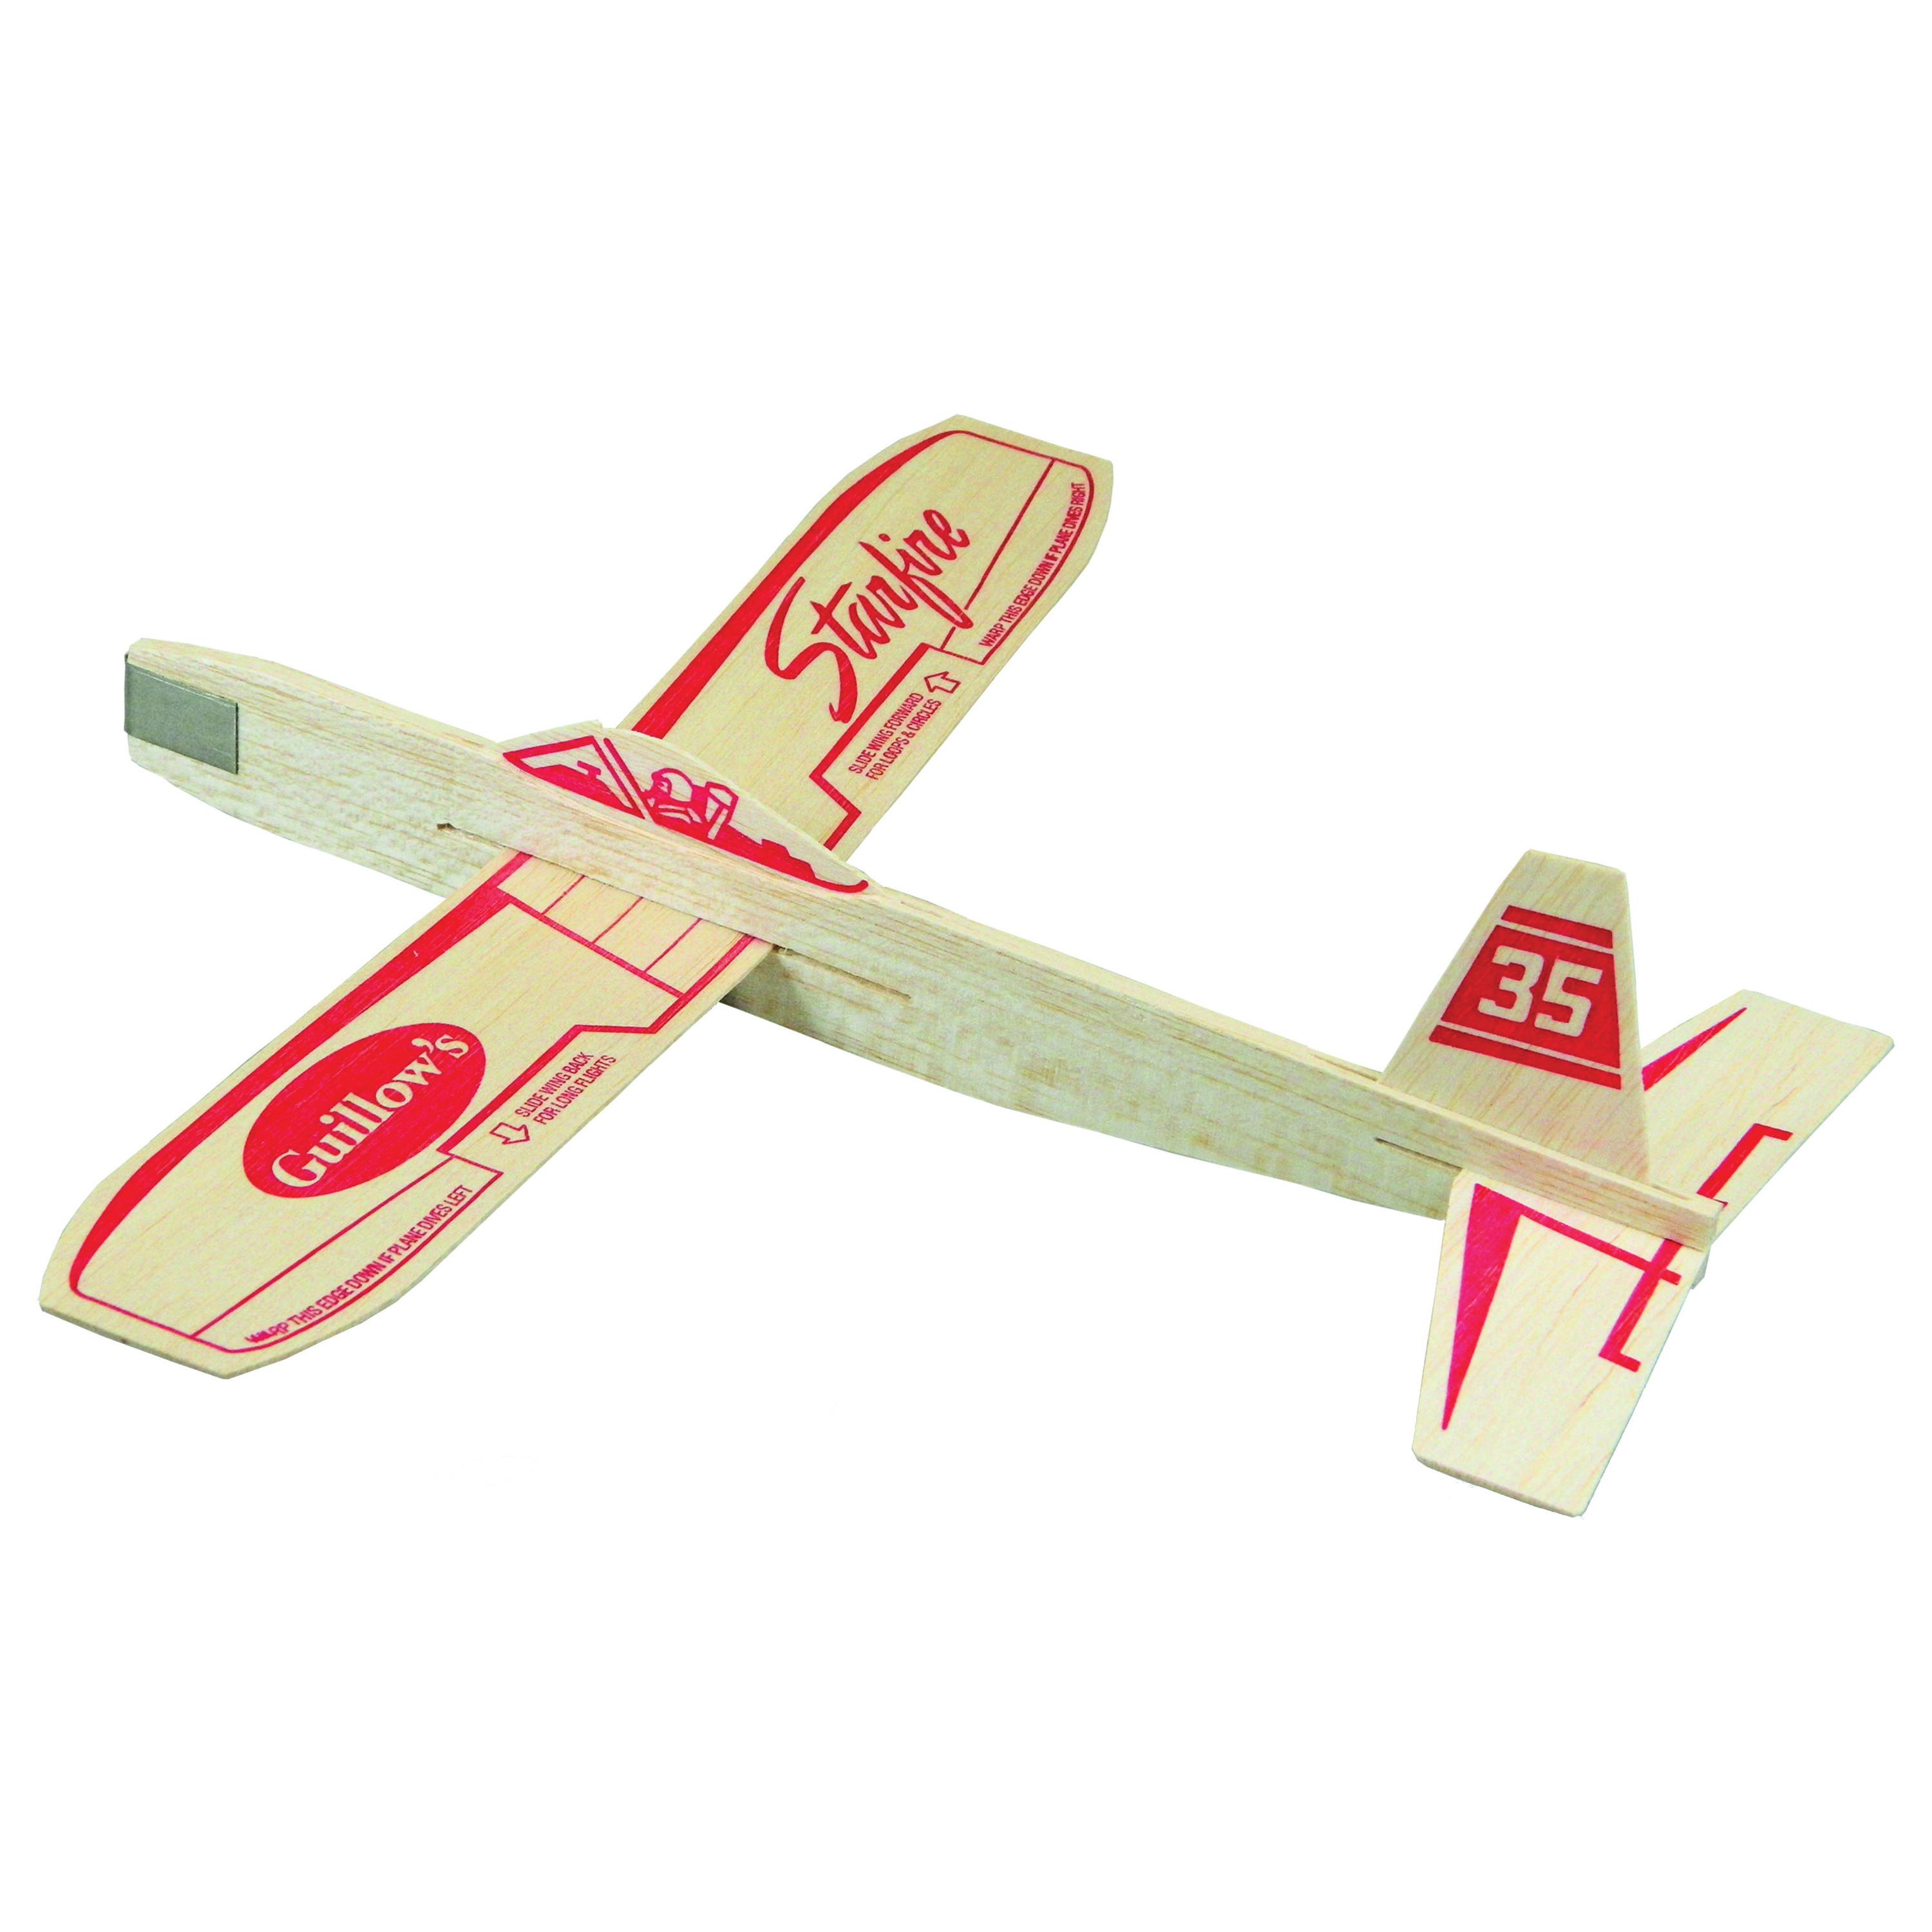 Picture of Guillow's Starfire 35 Balsa Glider Plane, 3 years and Up, 12 in, Wood